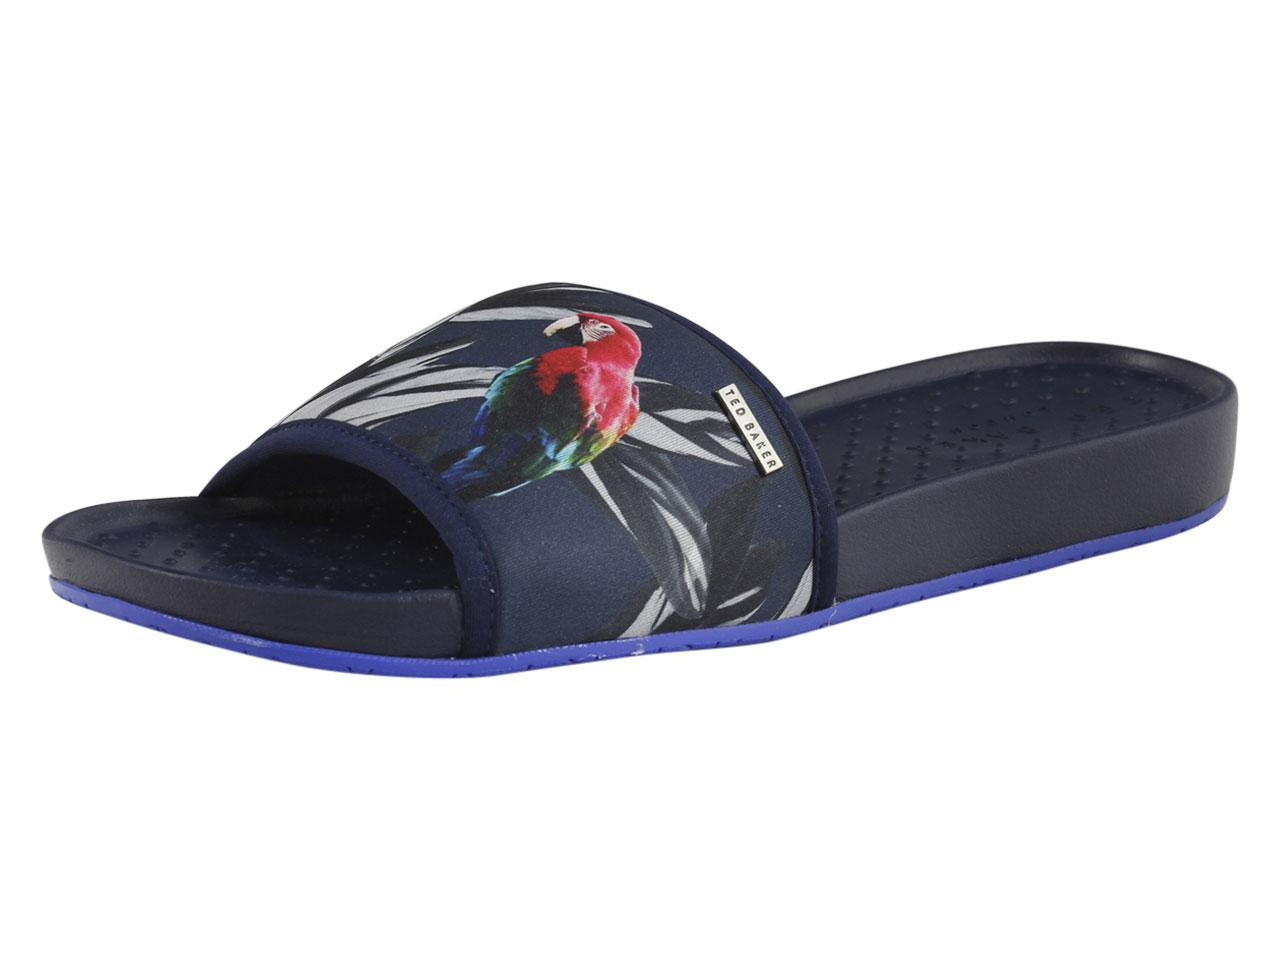 d1e4029592b2 Ted Baker Men s Sauldi Slides Sandals Shoes